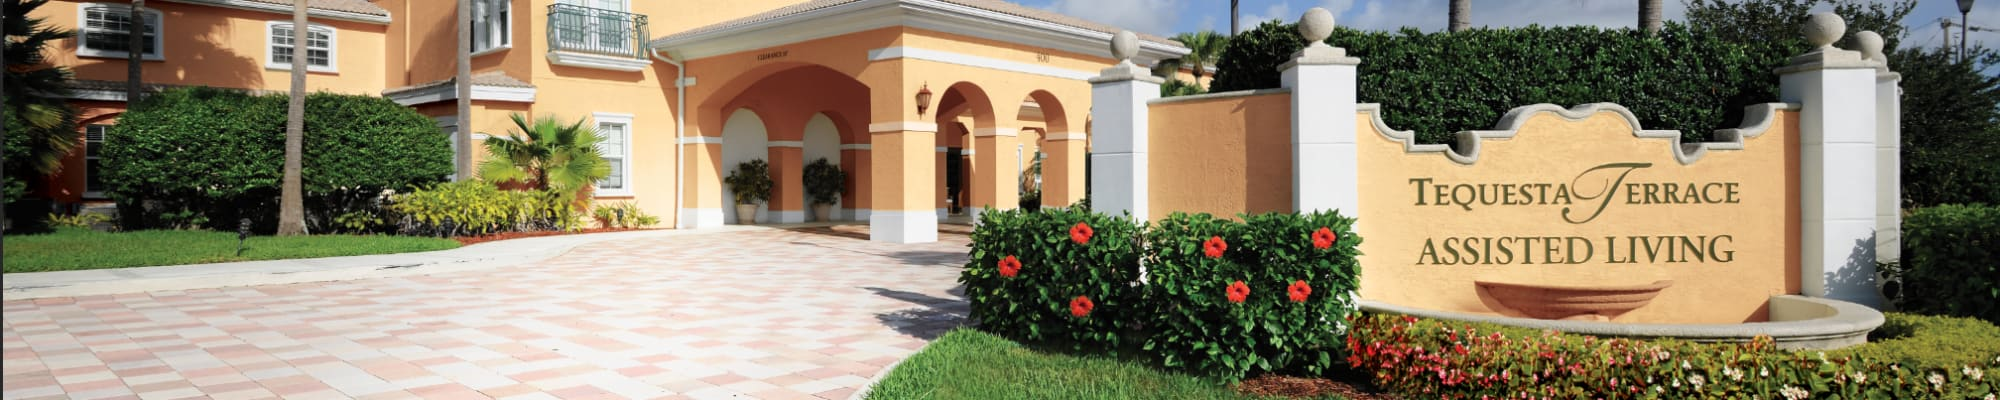 Senior living options at Tequesta Terrace in Tequesta, Florida